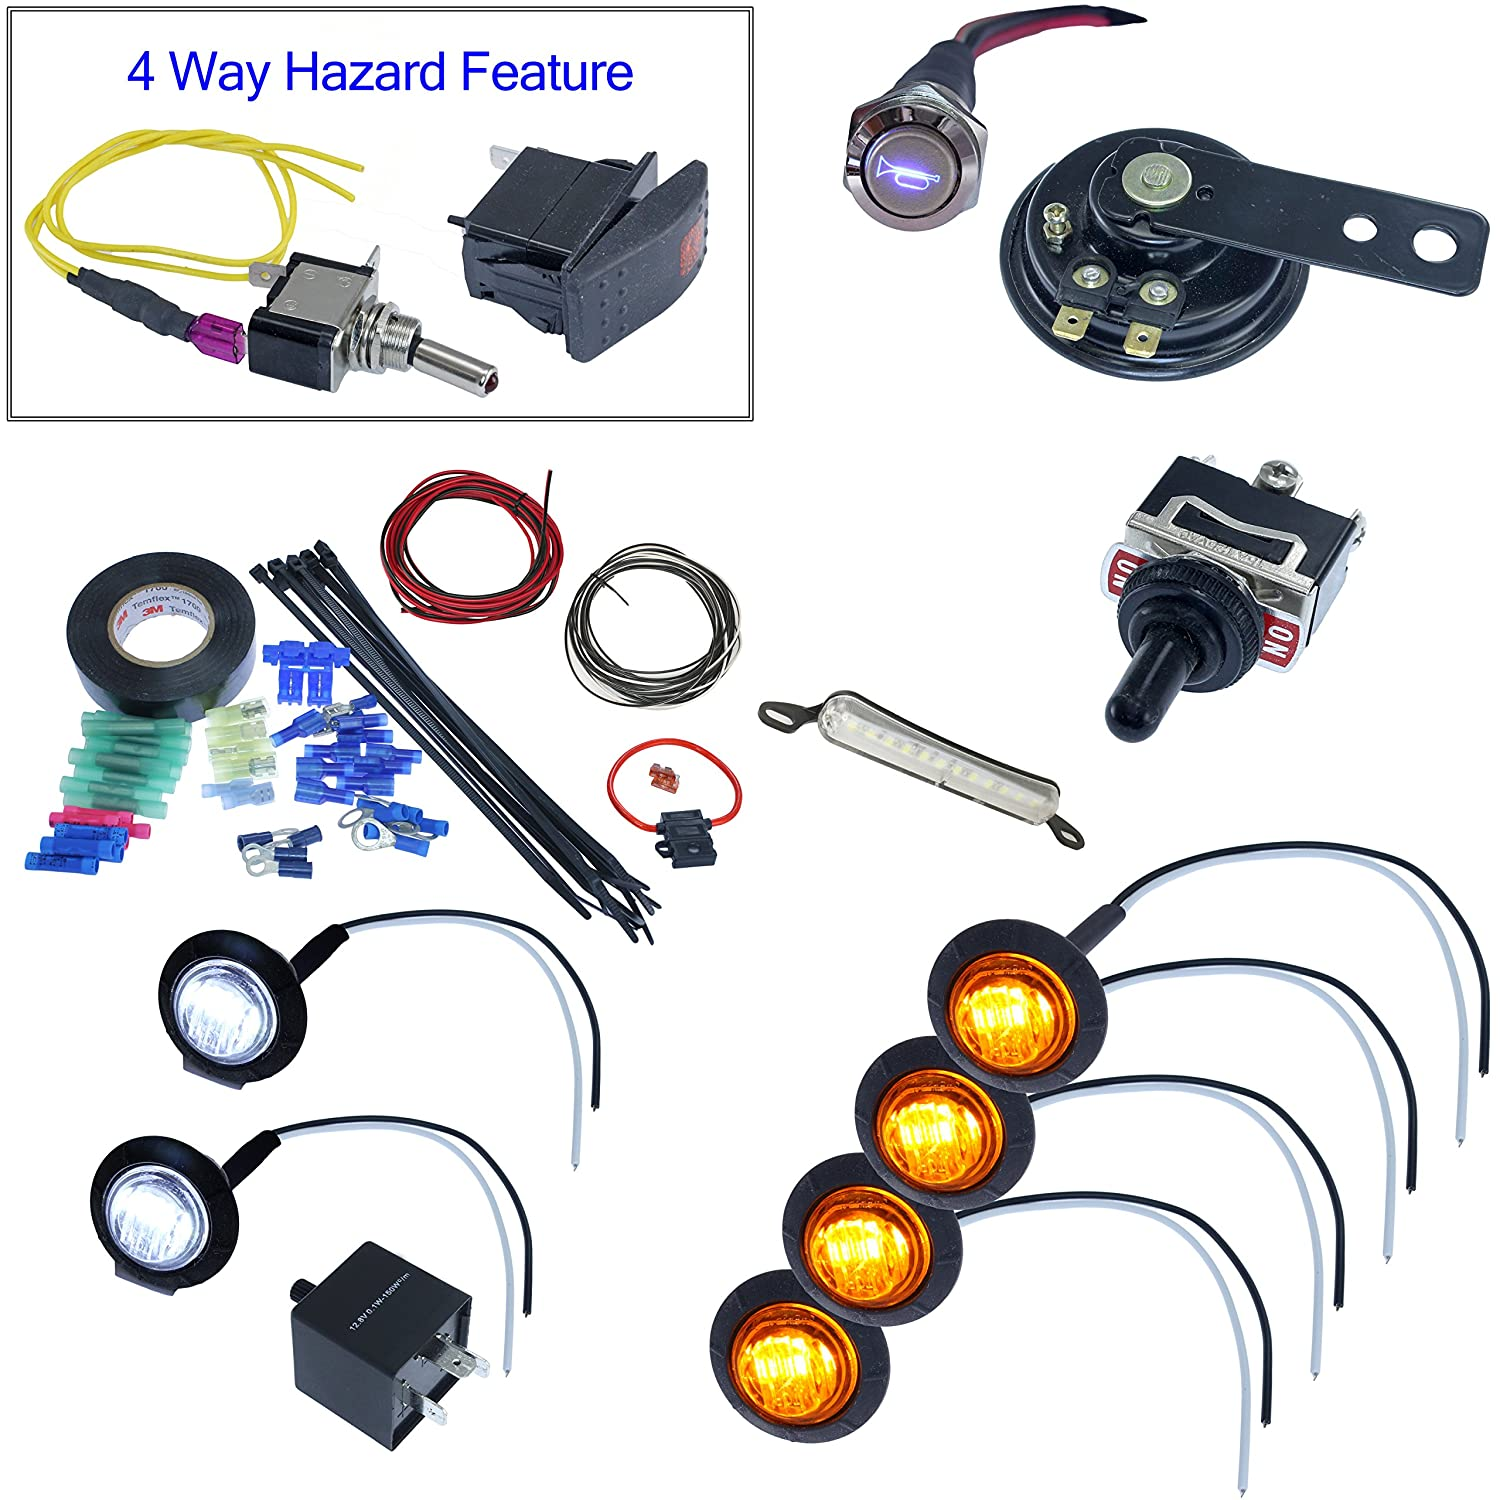 MCSADVENTURES ATV UTV Toggle Switch Turn Signal With Horn And Hardware Street Legal Kit - Round LEDs and License Plate LED Advance MCS Electronics 4332997010